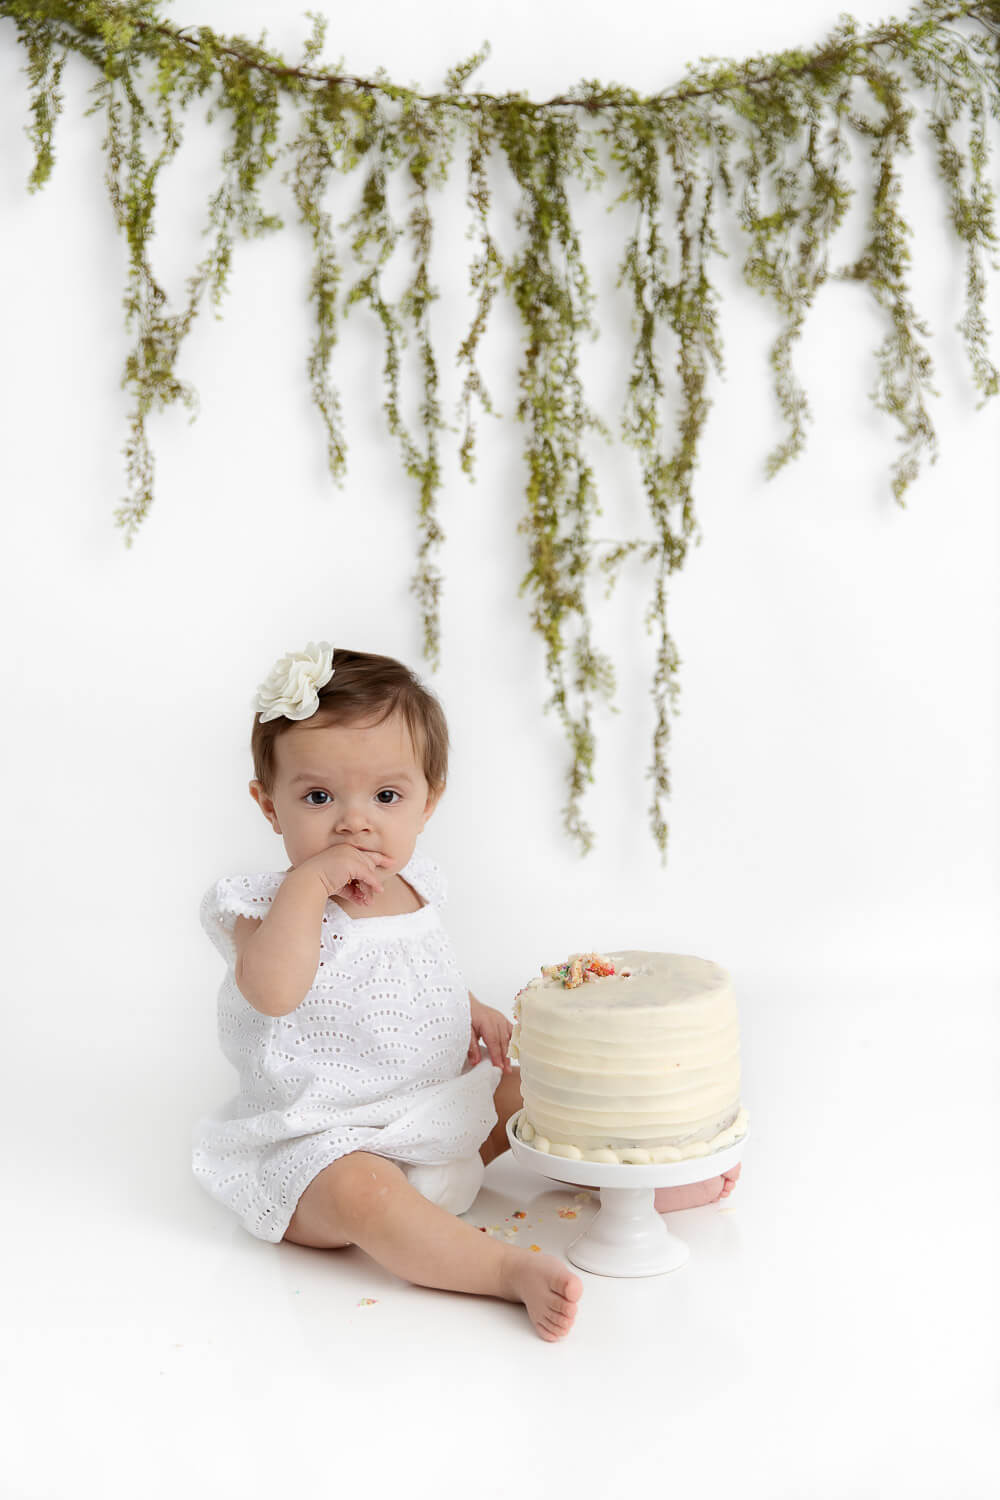 1 year old girl wearing a white dress sitting with her smash cake with greenery hanging in the background